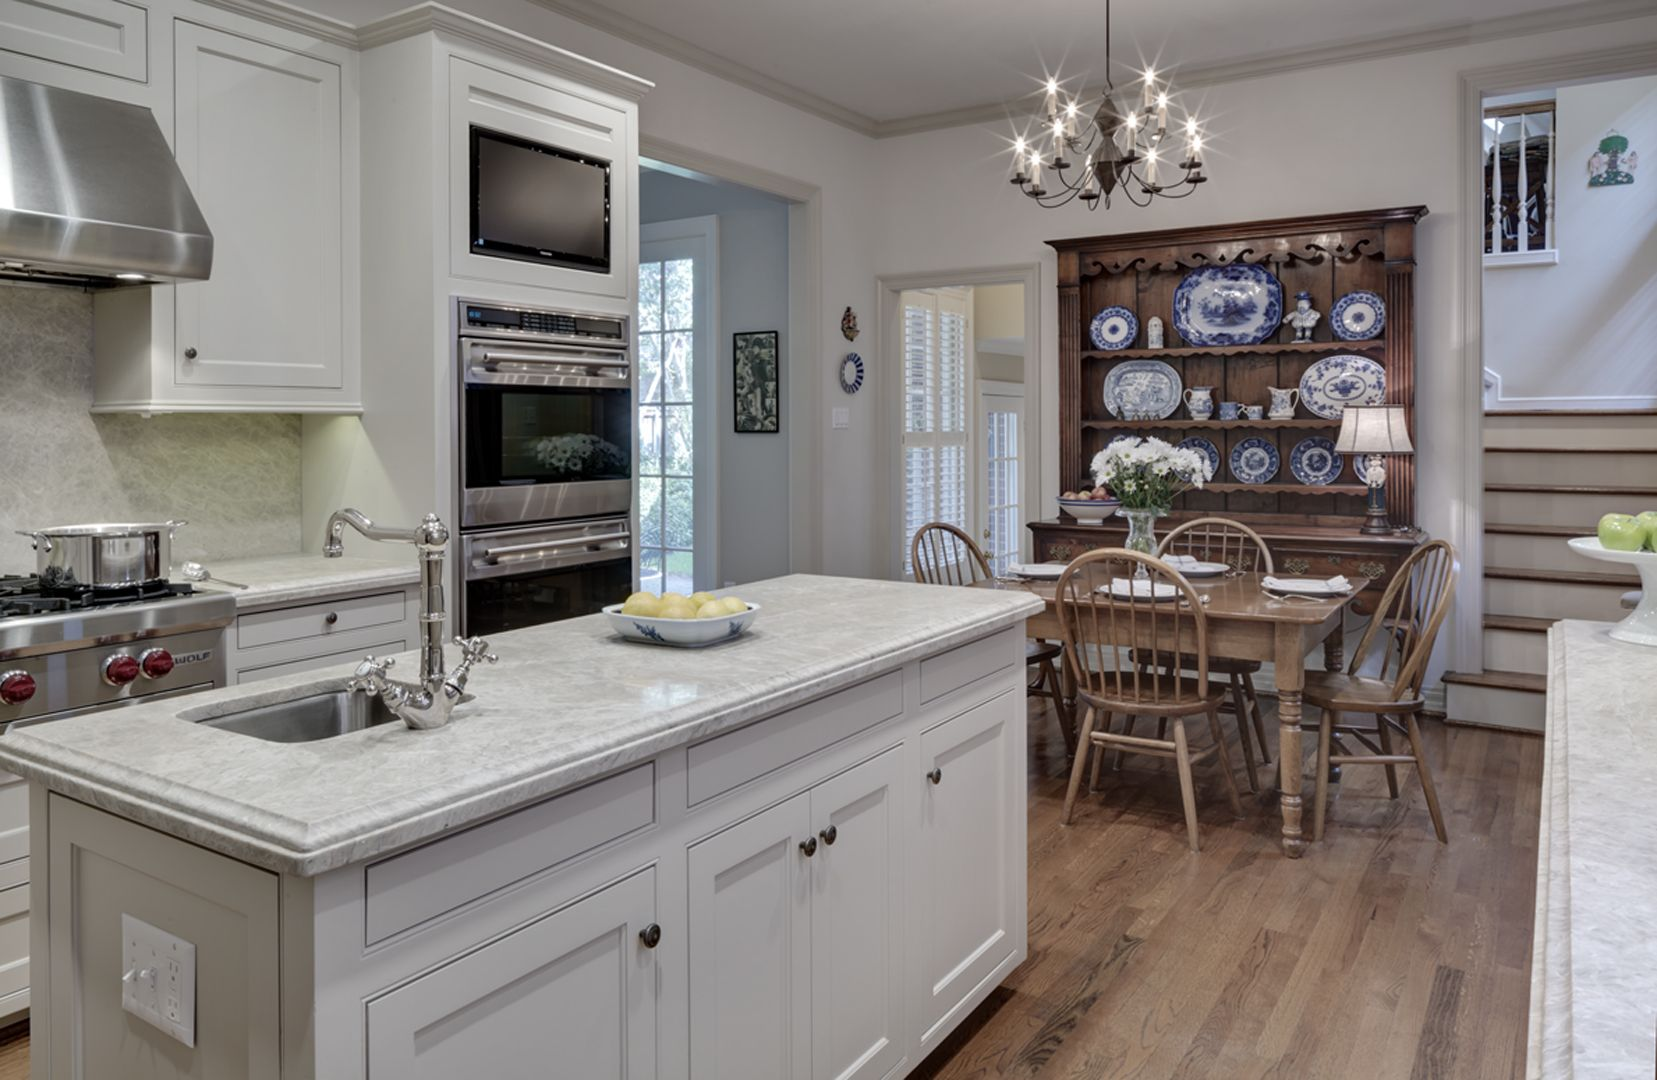 Kitchen Cabinet Color Benjamin Moore Revere Pewter Kitchen Cabinet Colors Revere Pewter Kitchen White Kitchen Paint